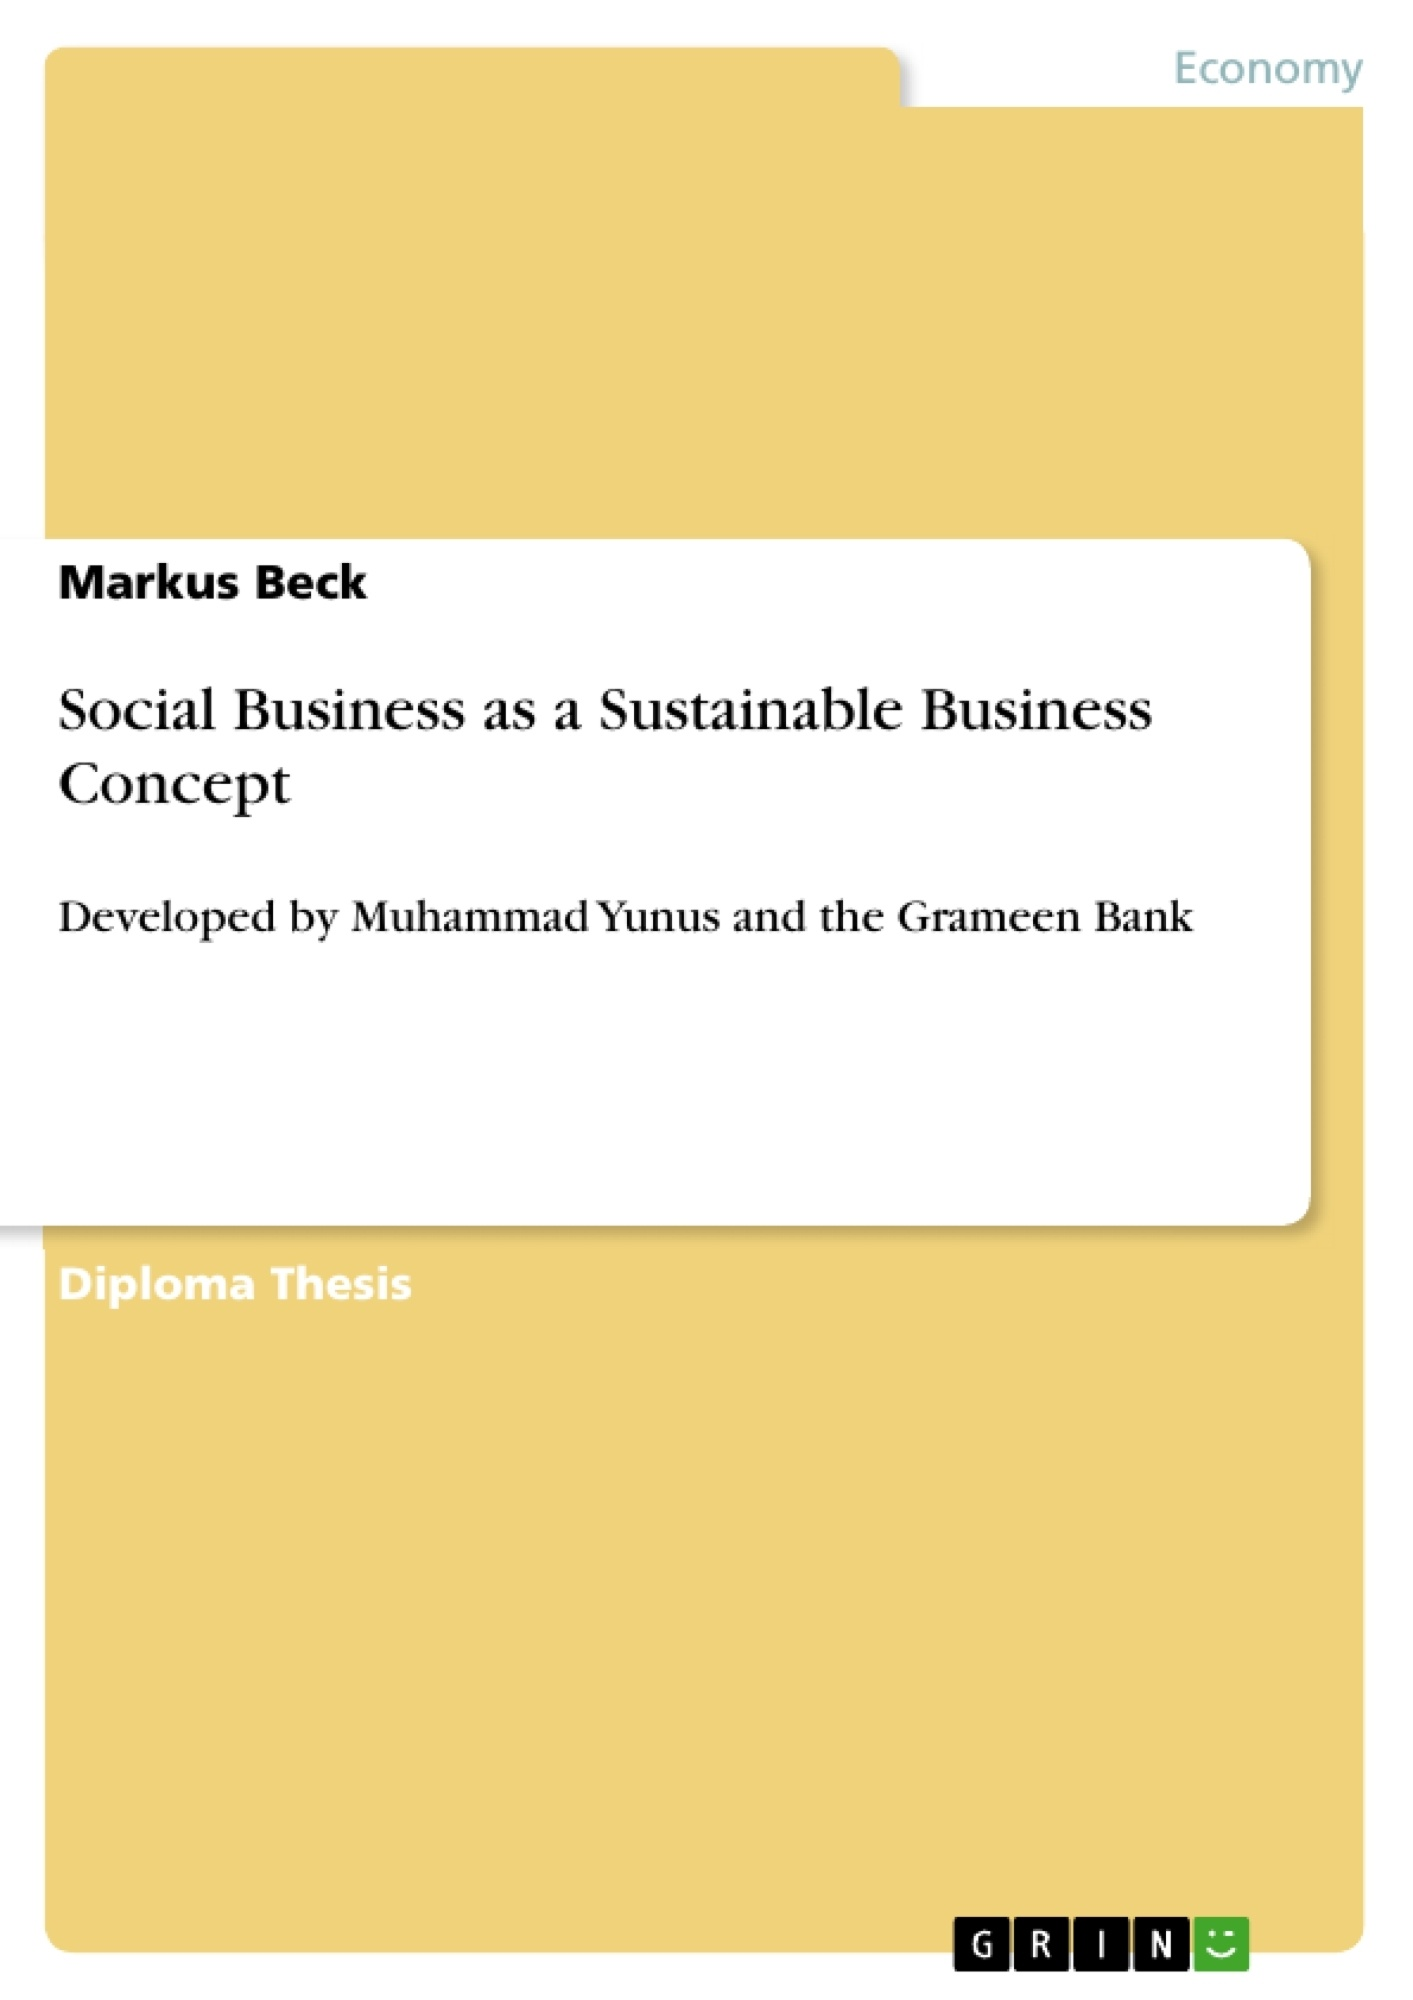 Title: Social Business as a Sustainable Business Concept